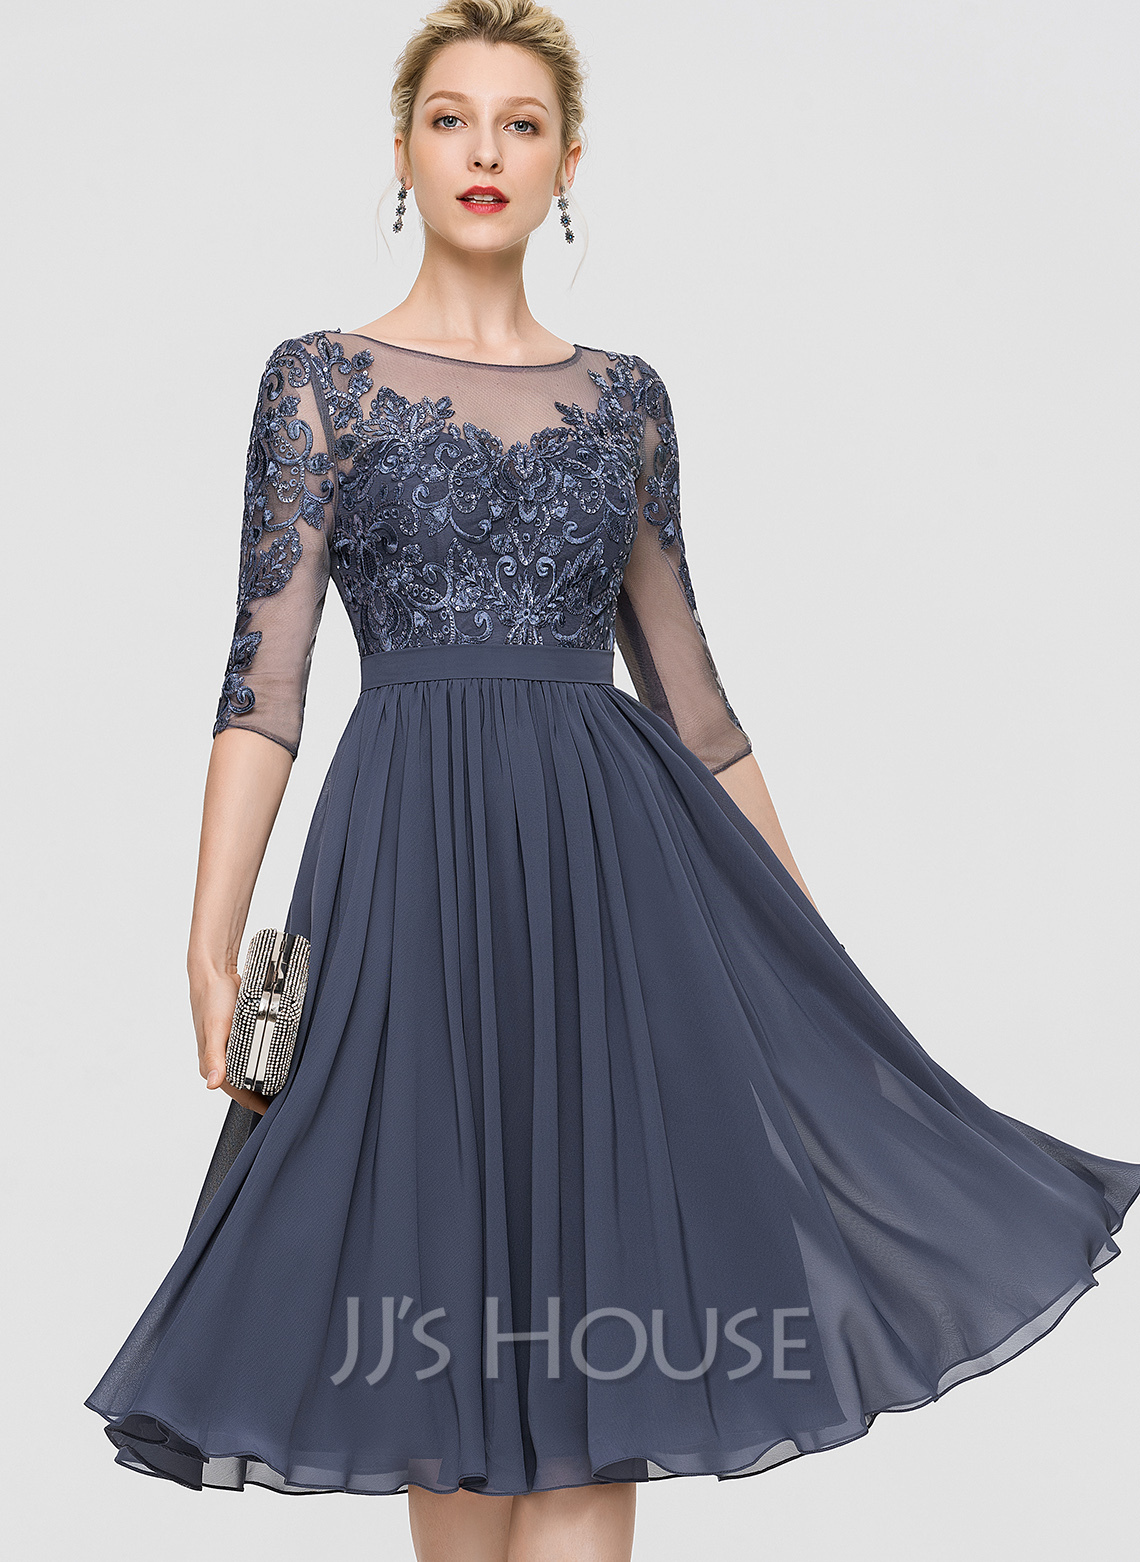 A-Line Scoop Neck Knee-Length Chiffon Cocktail Dress With Sequins